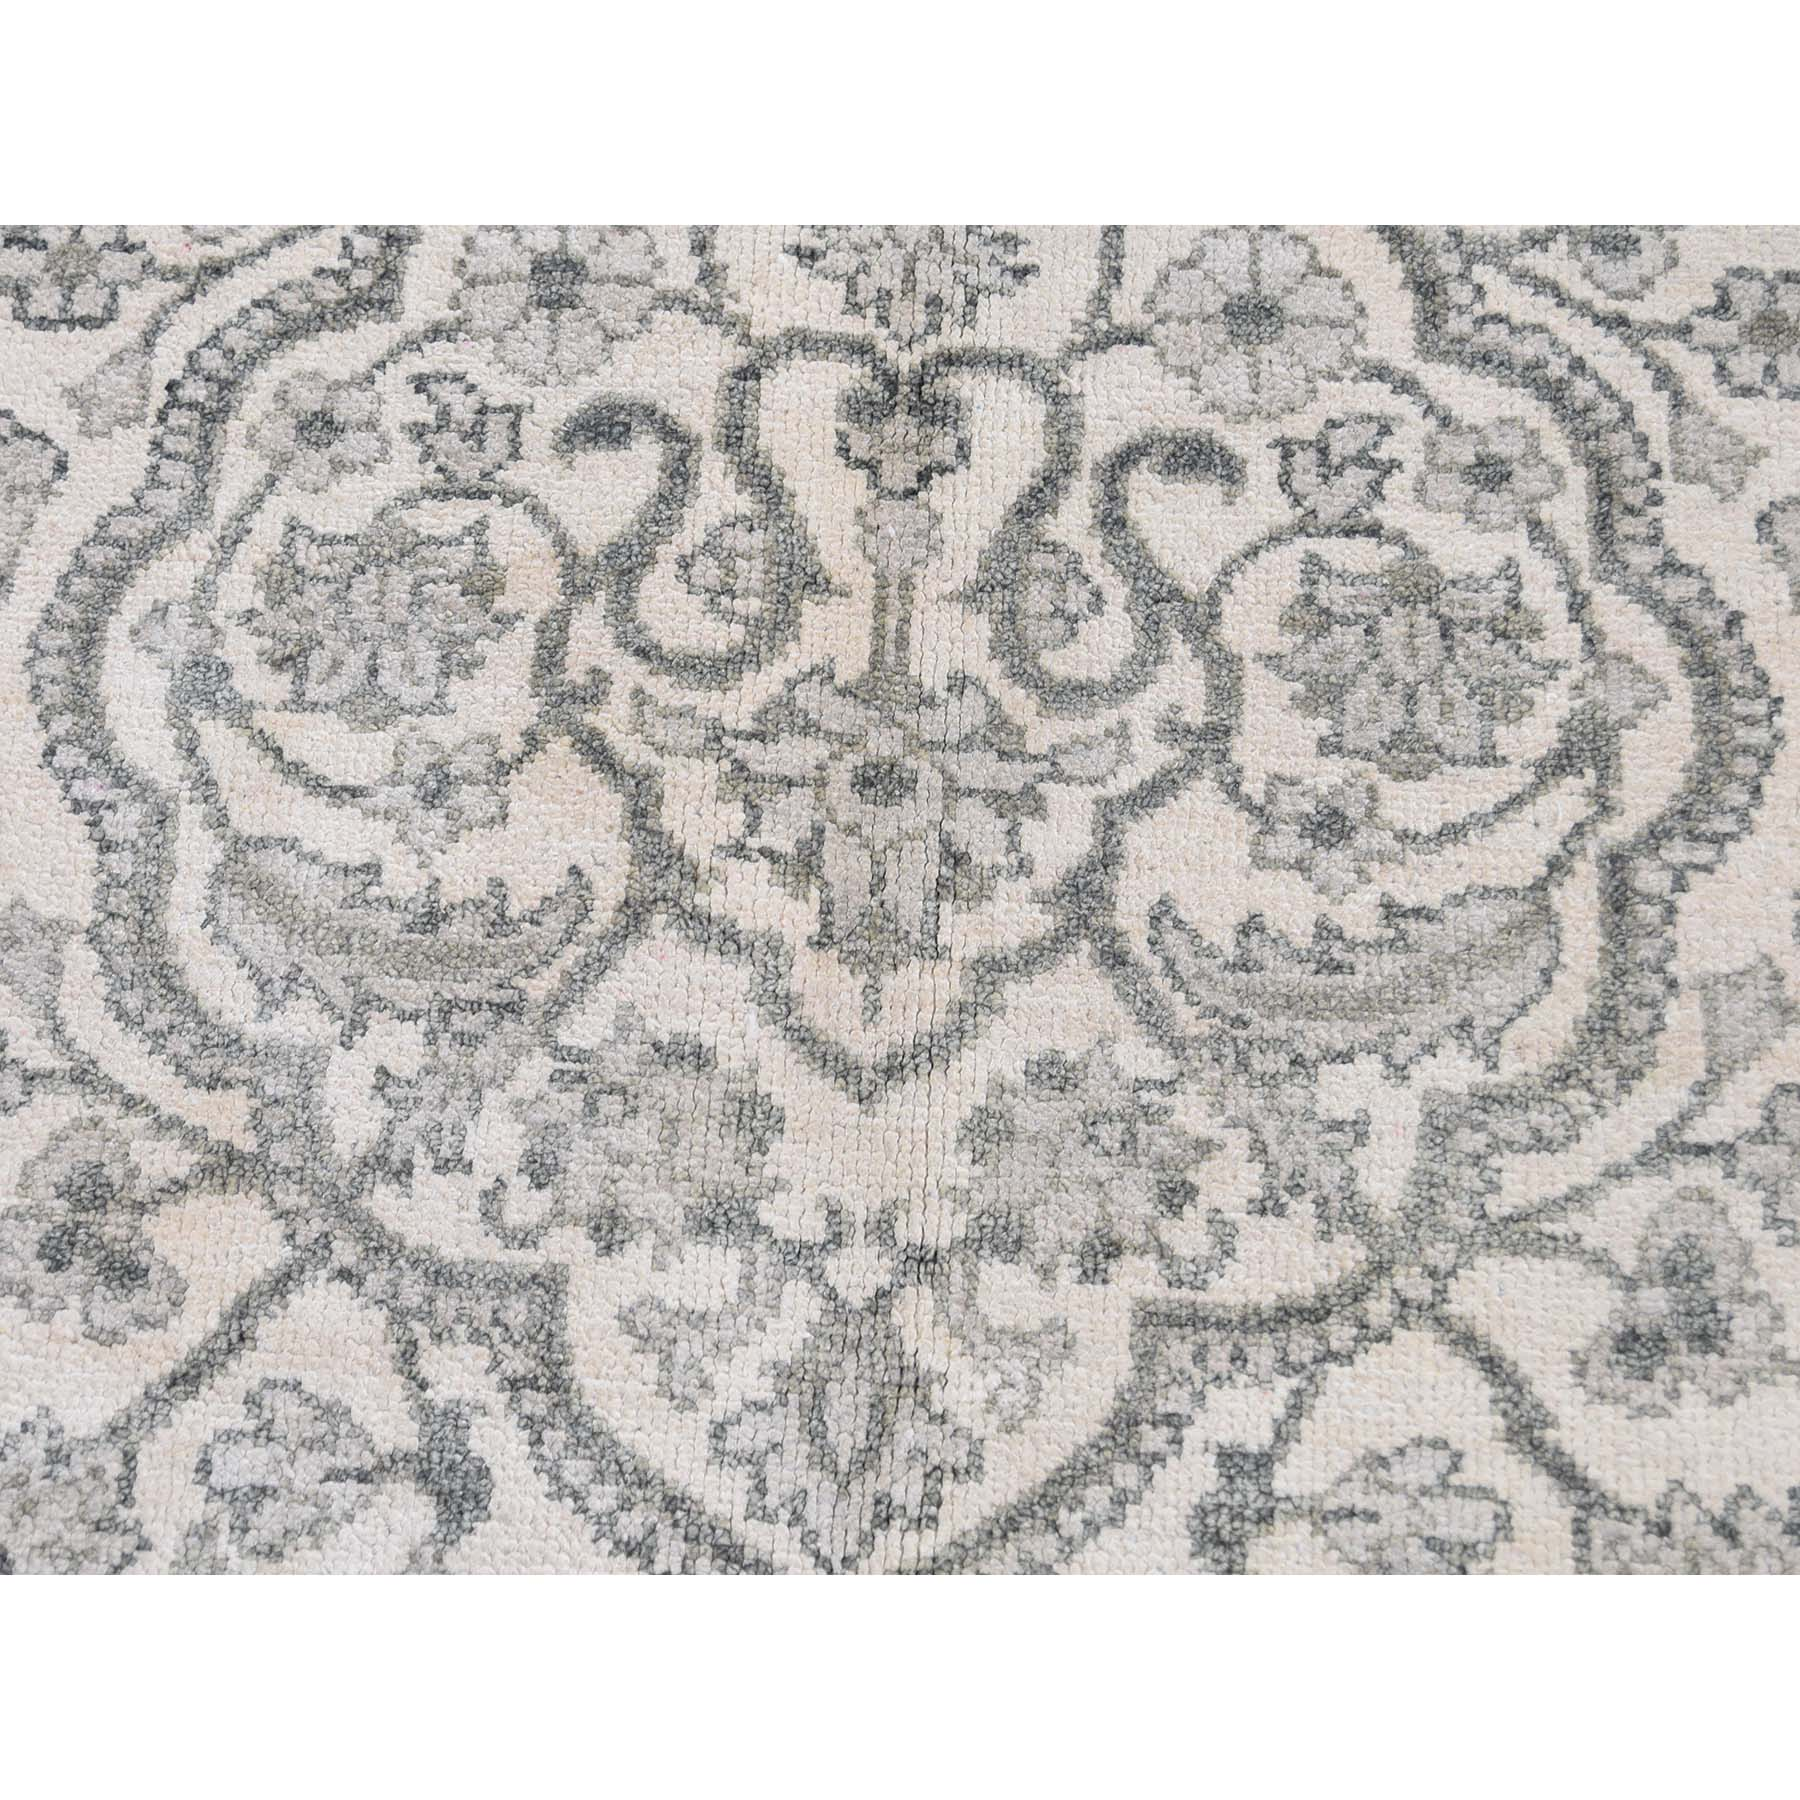 8-10 x12- Pure silk Tone on Tone Hand Knotted Oriental Rug